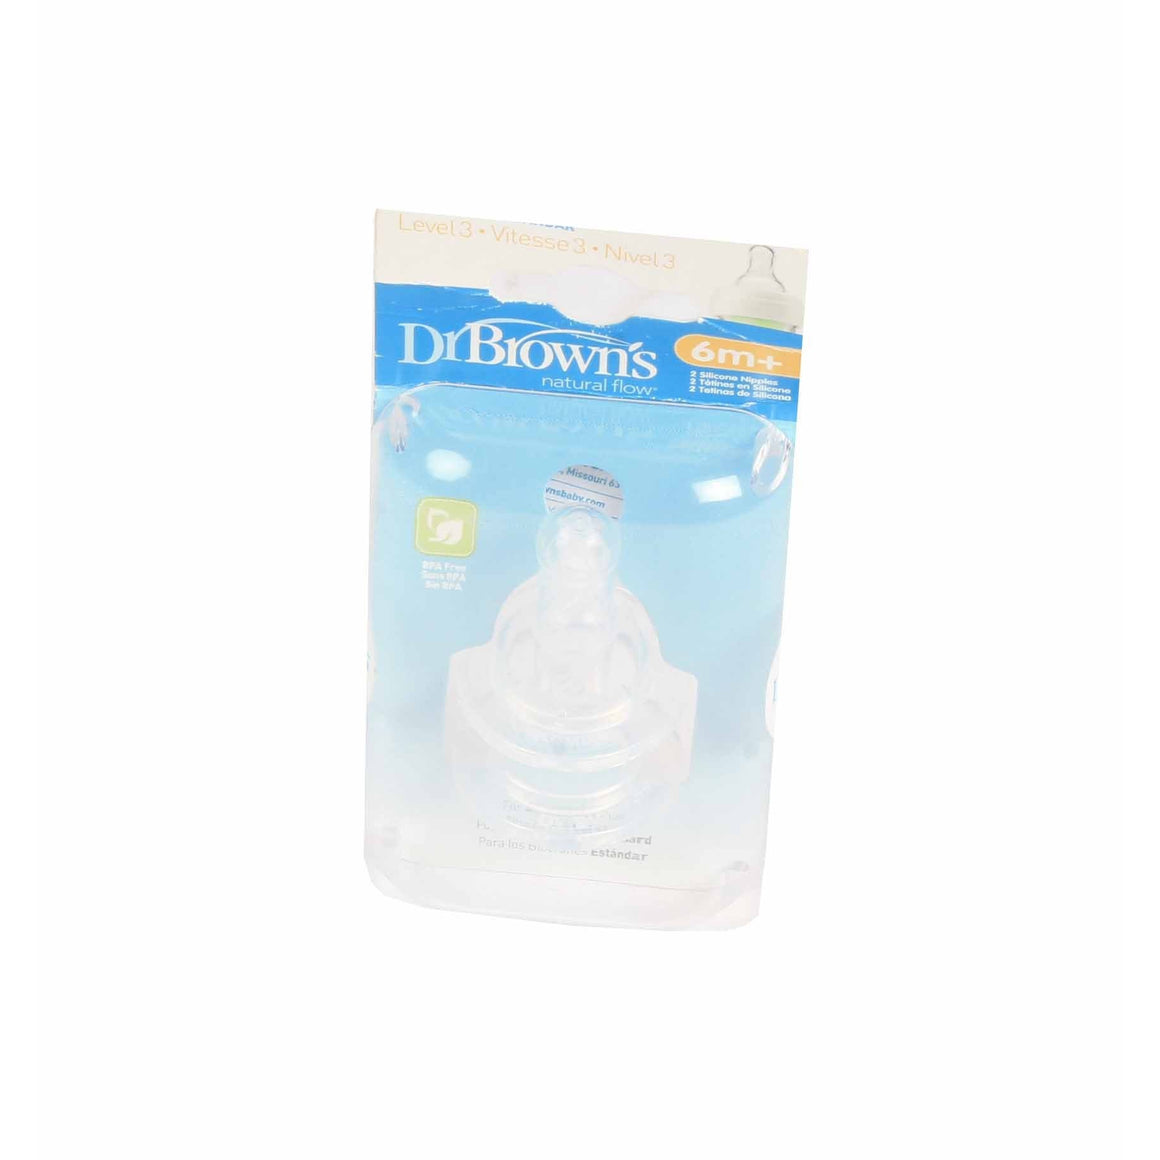 Dr Browns Teether Fat 2 sets with pack - Cuddlecircle